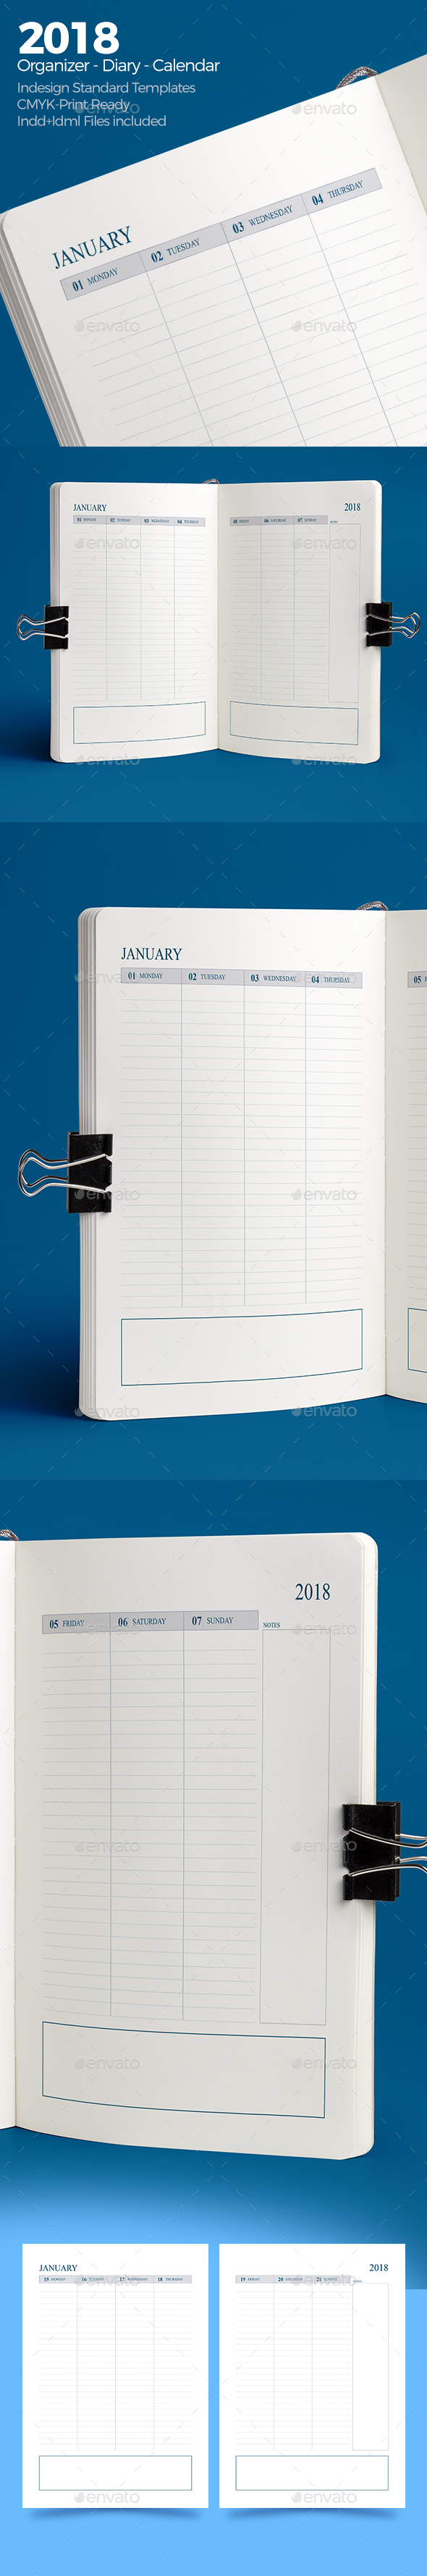 Weekly Diary Planner 2018 v4 - Calendars Stationery